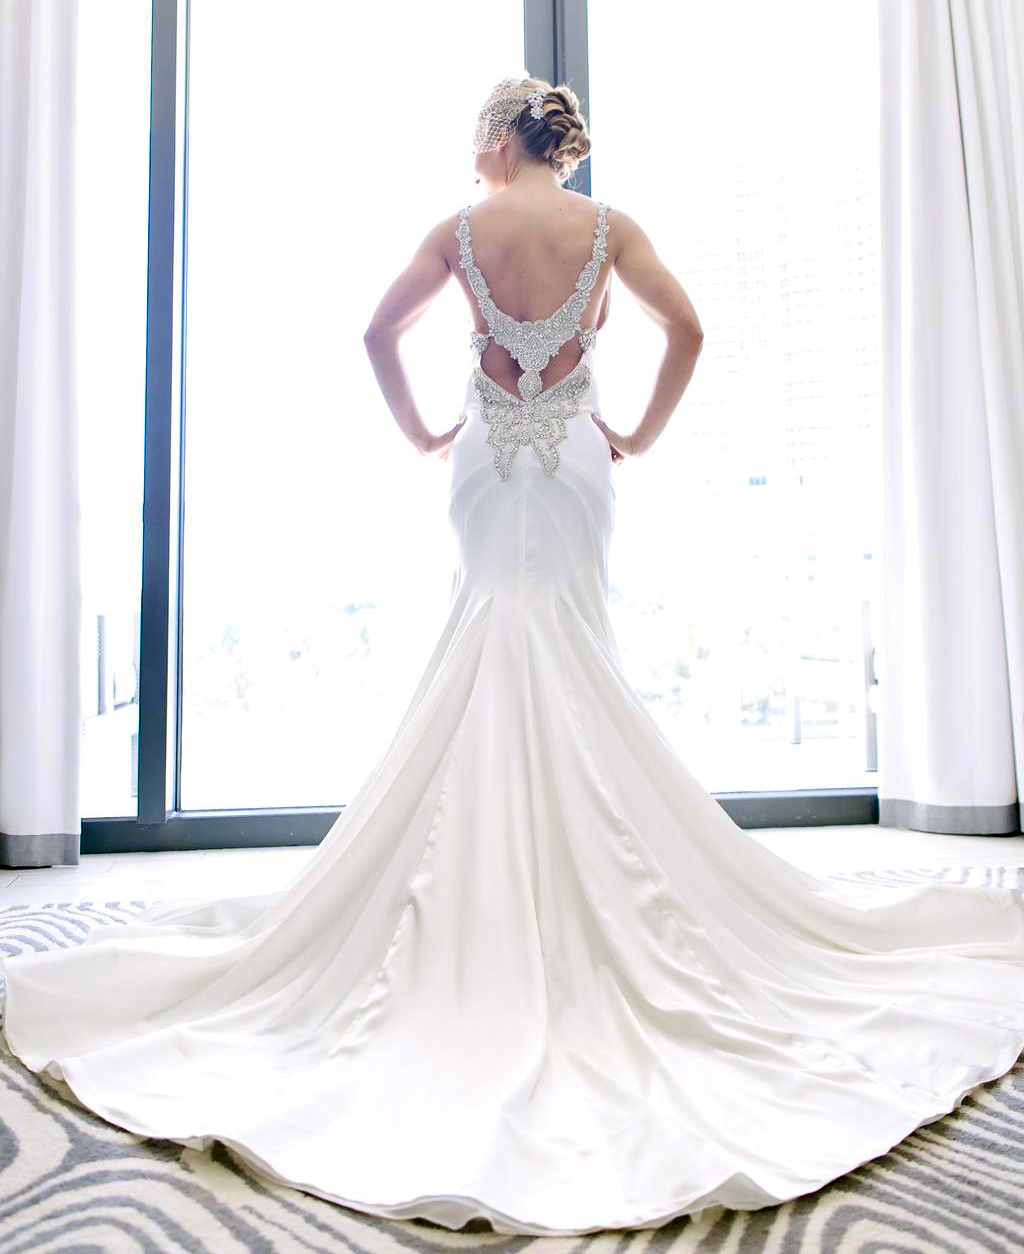 What You Need To Know About Pre-Owned Wedding Dresses